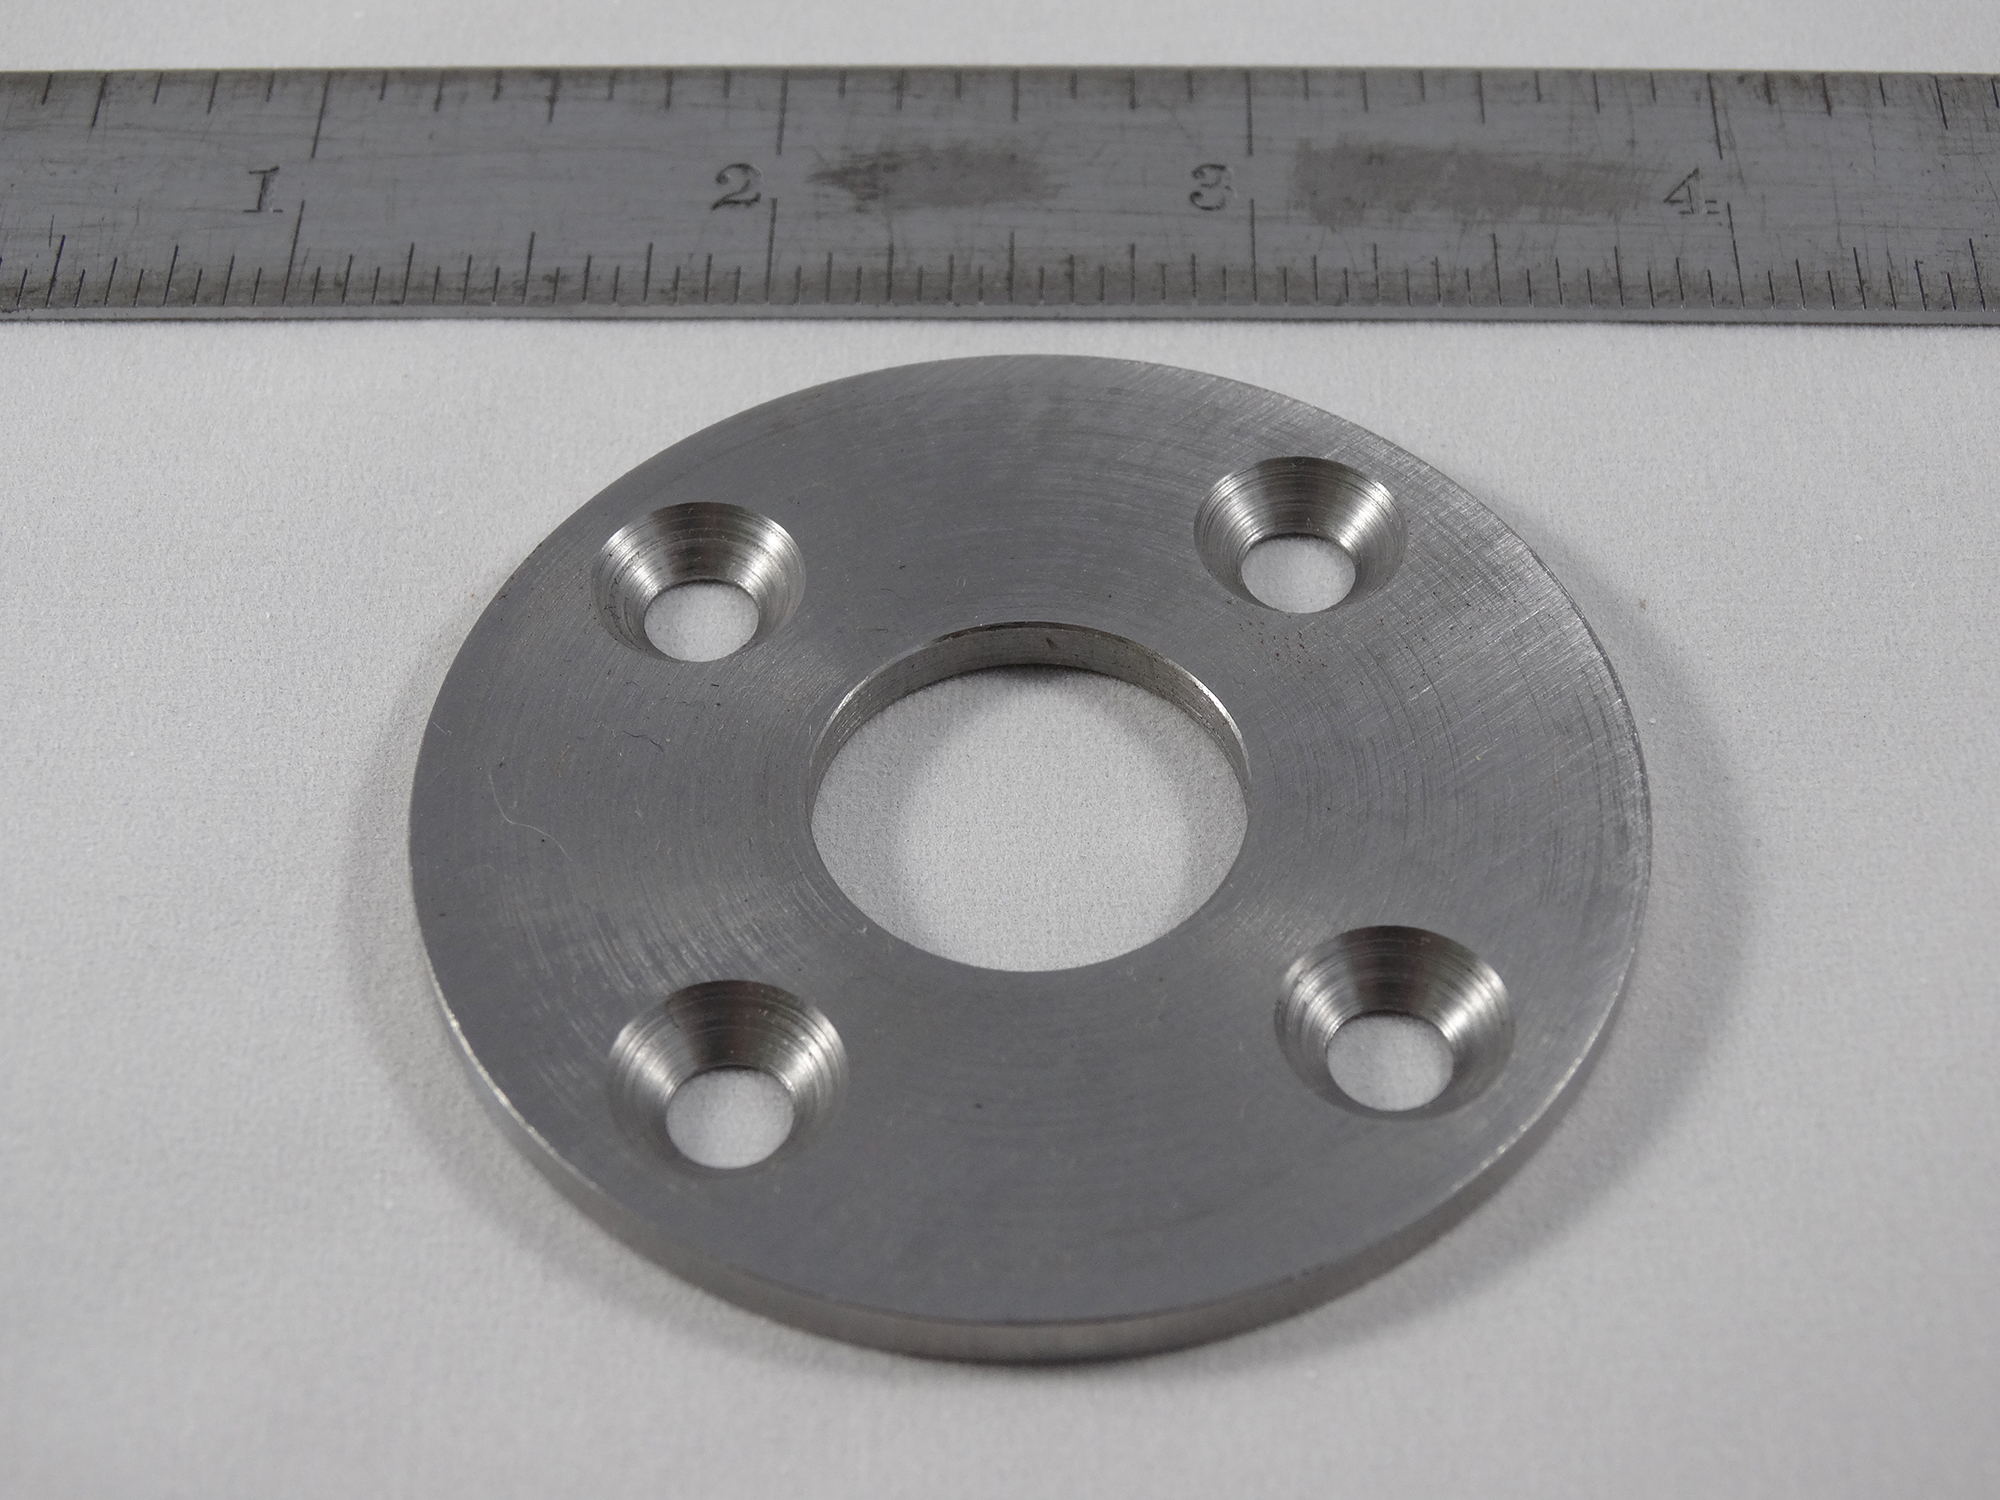 CNC Turned Washer - Material: 1117 Steel